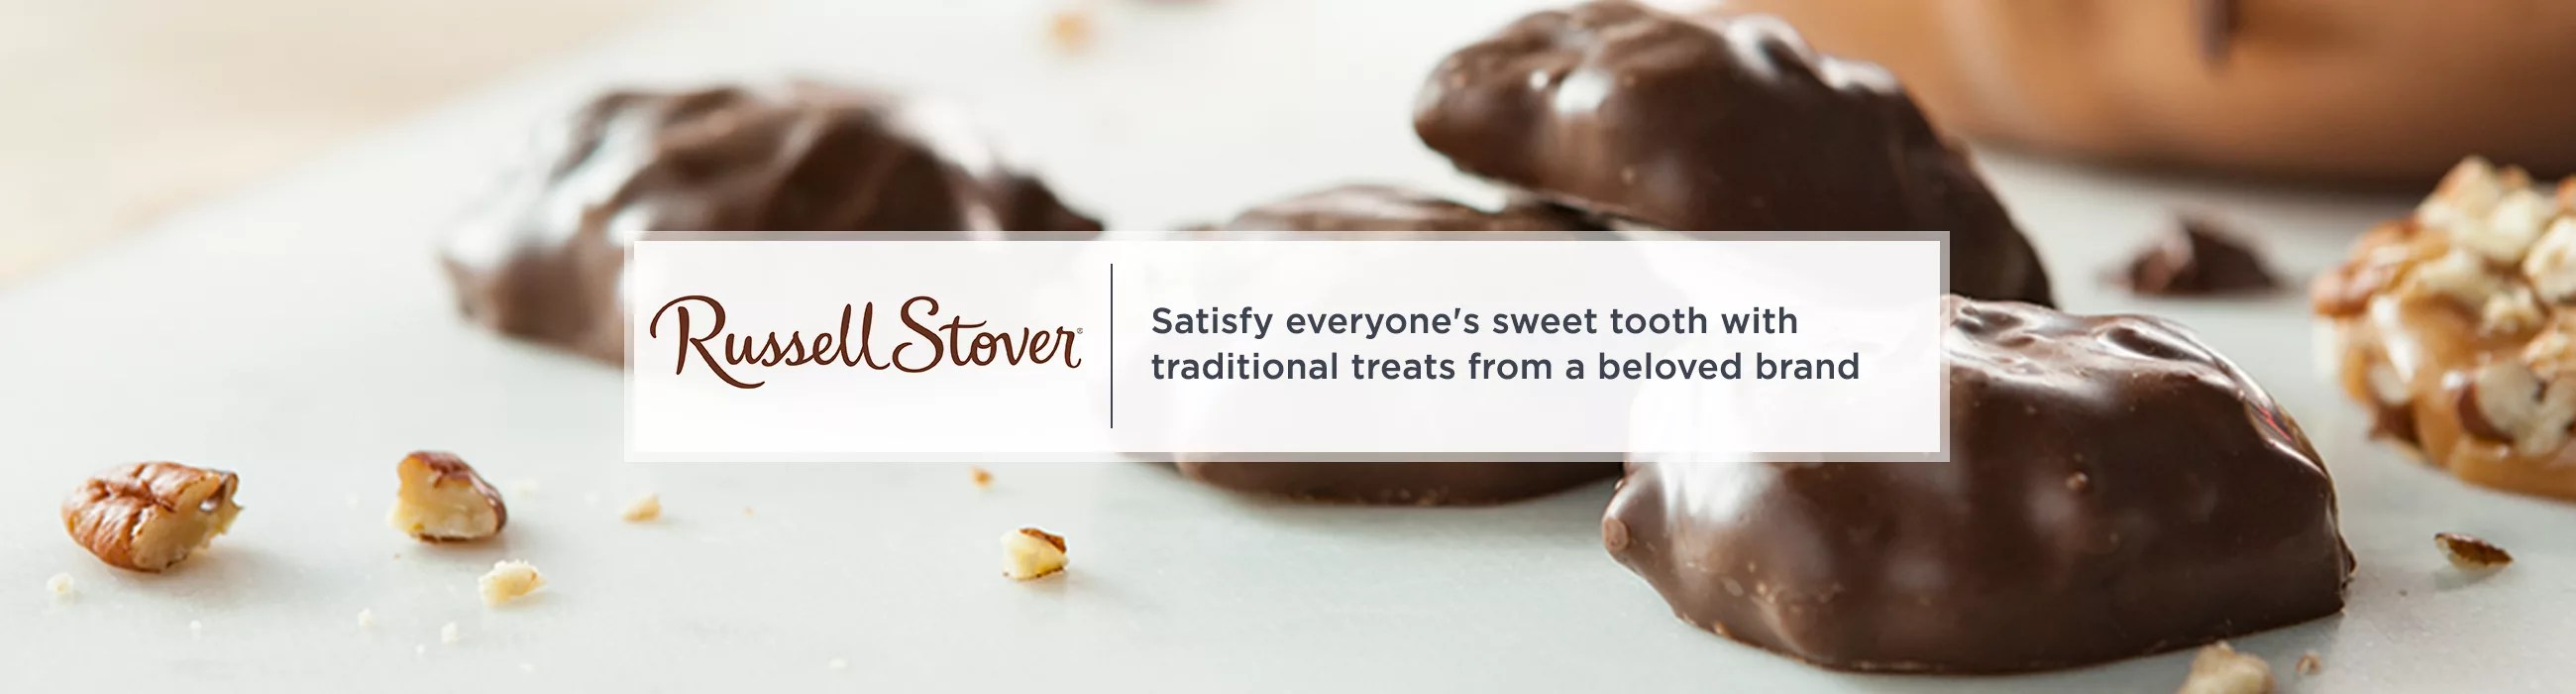 Fullsize Of Russell Stover Chocolates